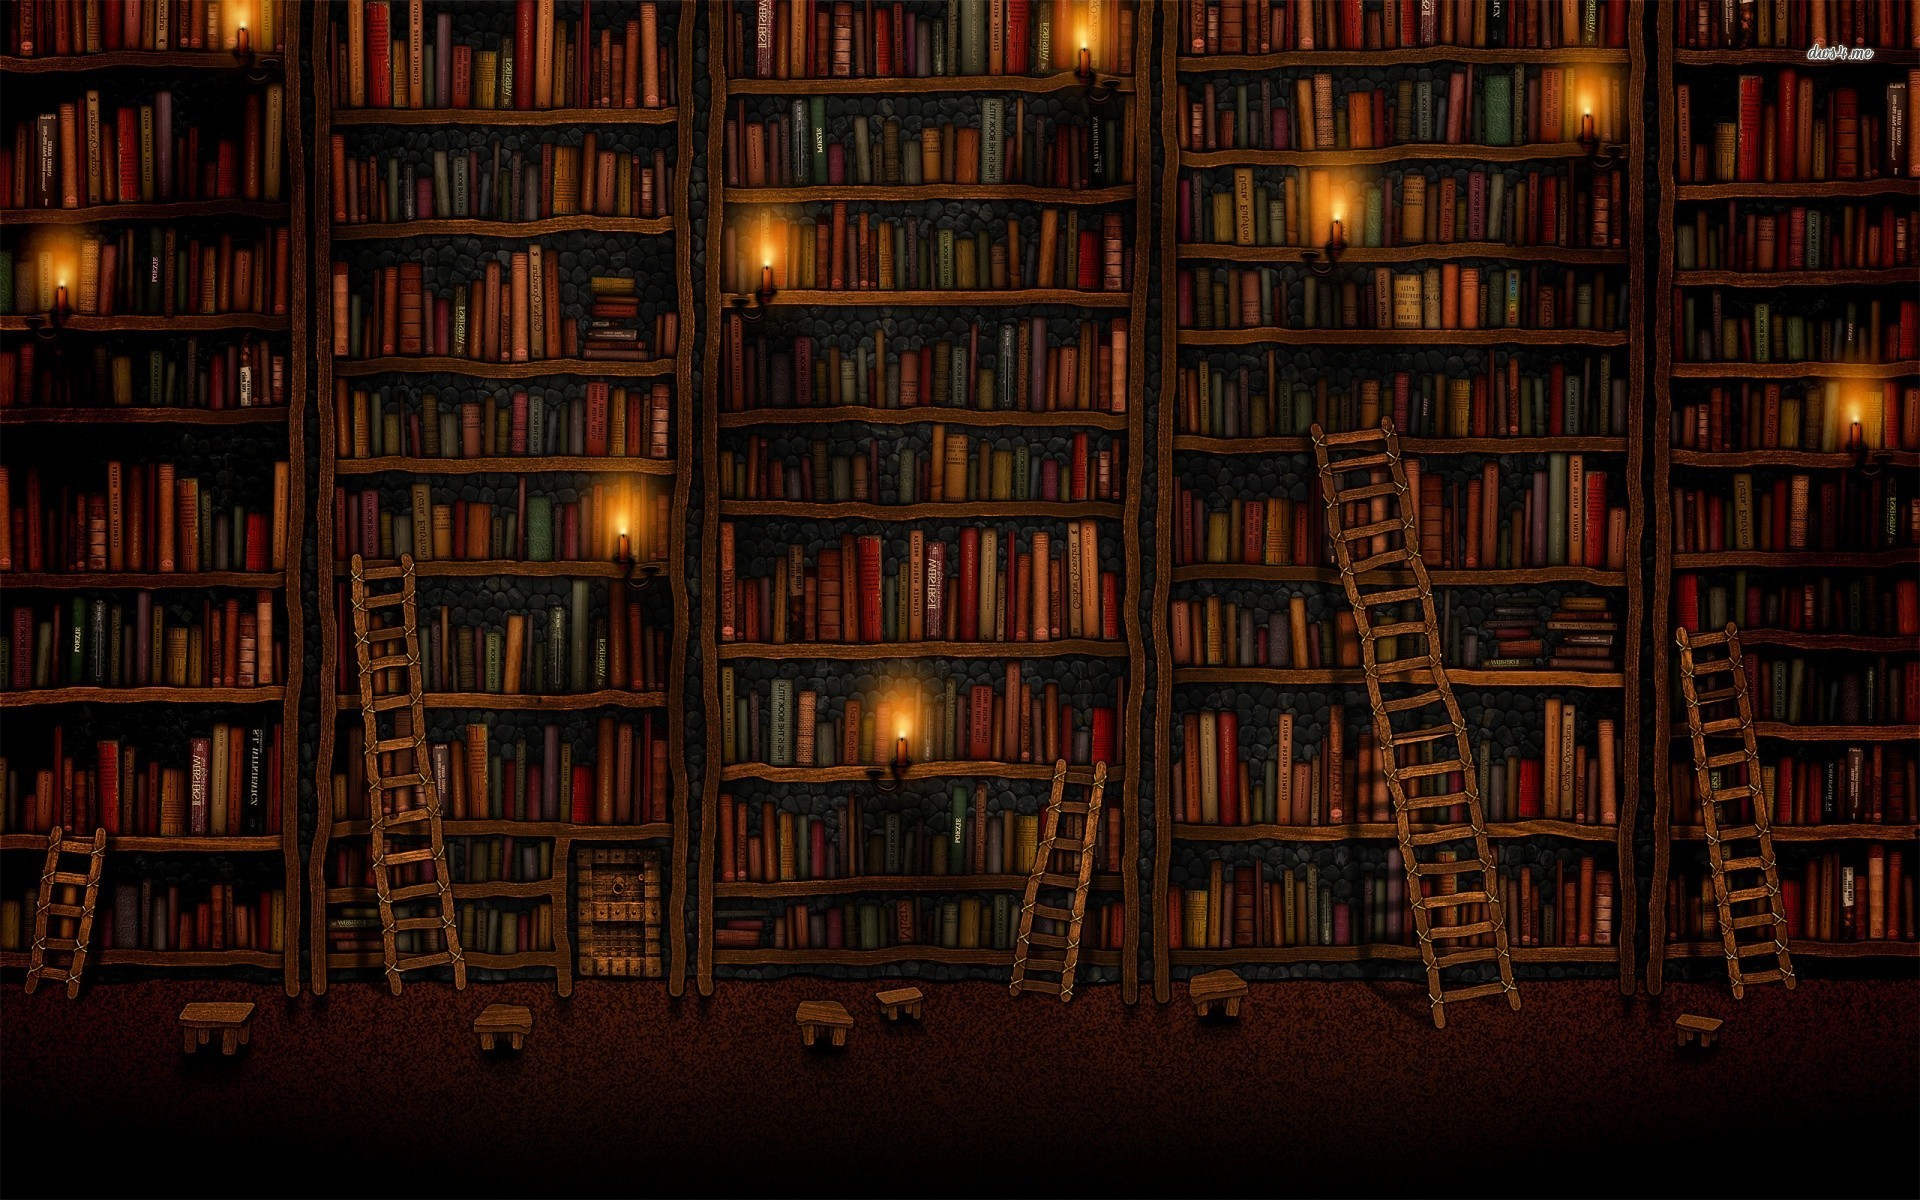 12767 Old Library 1920x1200 Artistic Wallpaper